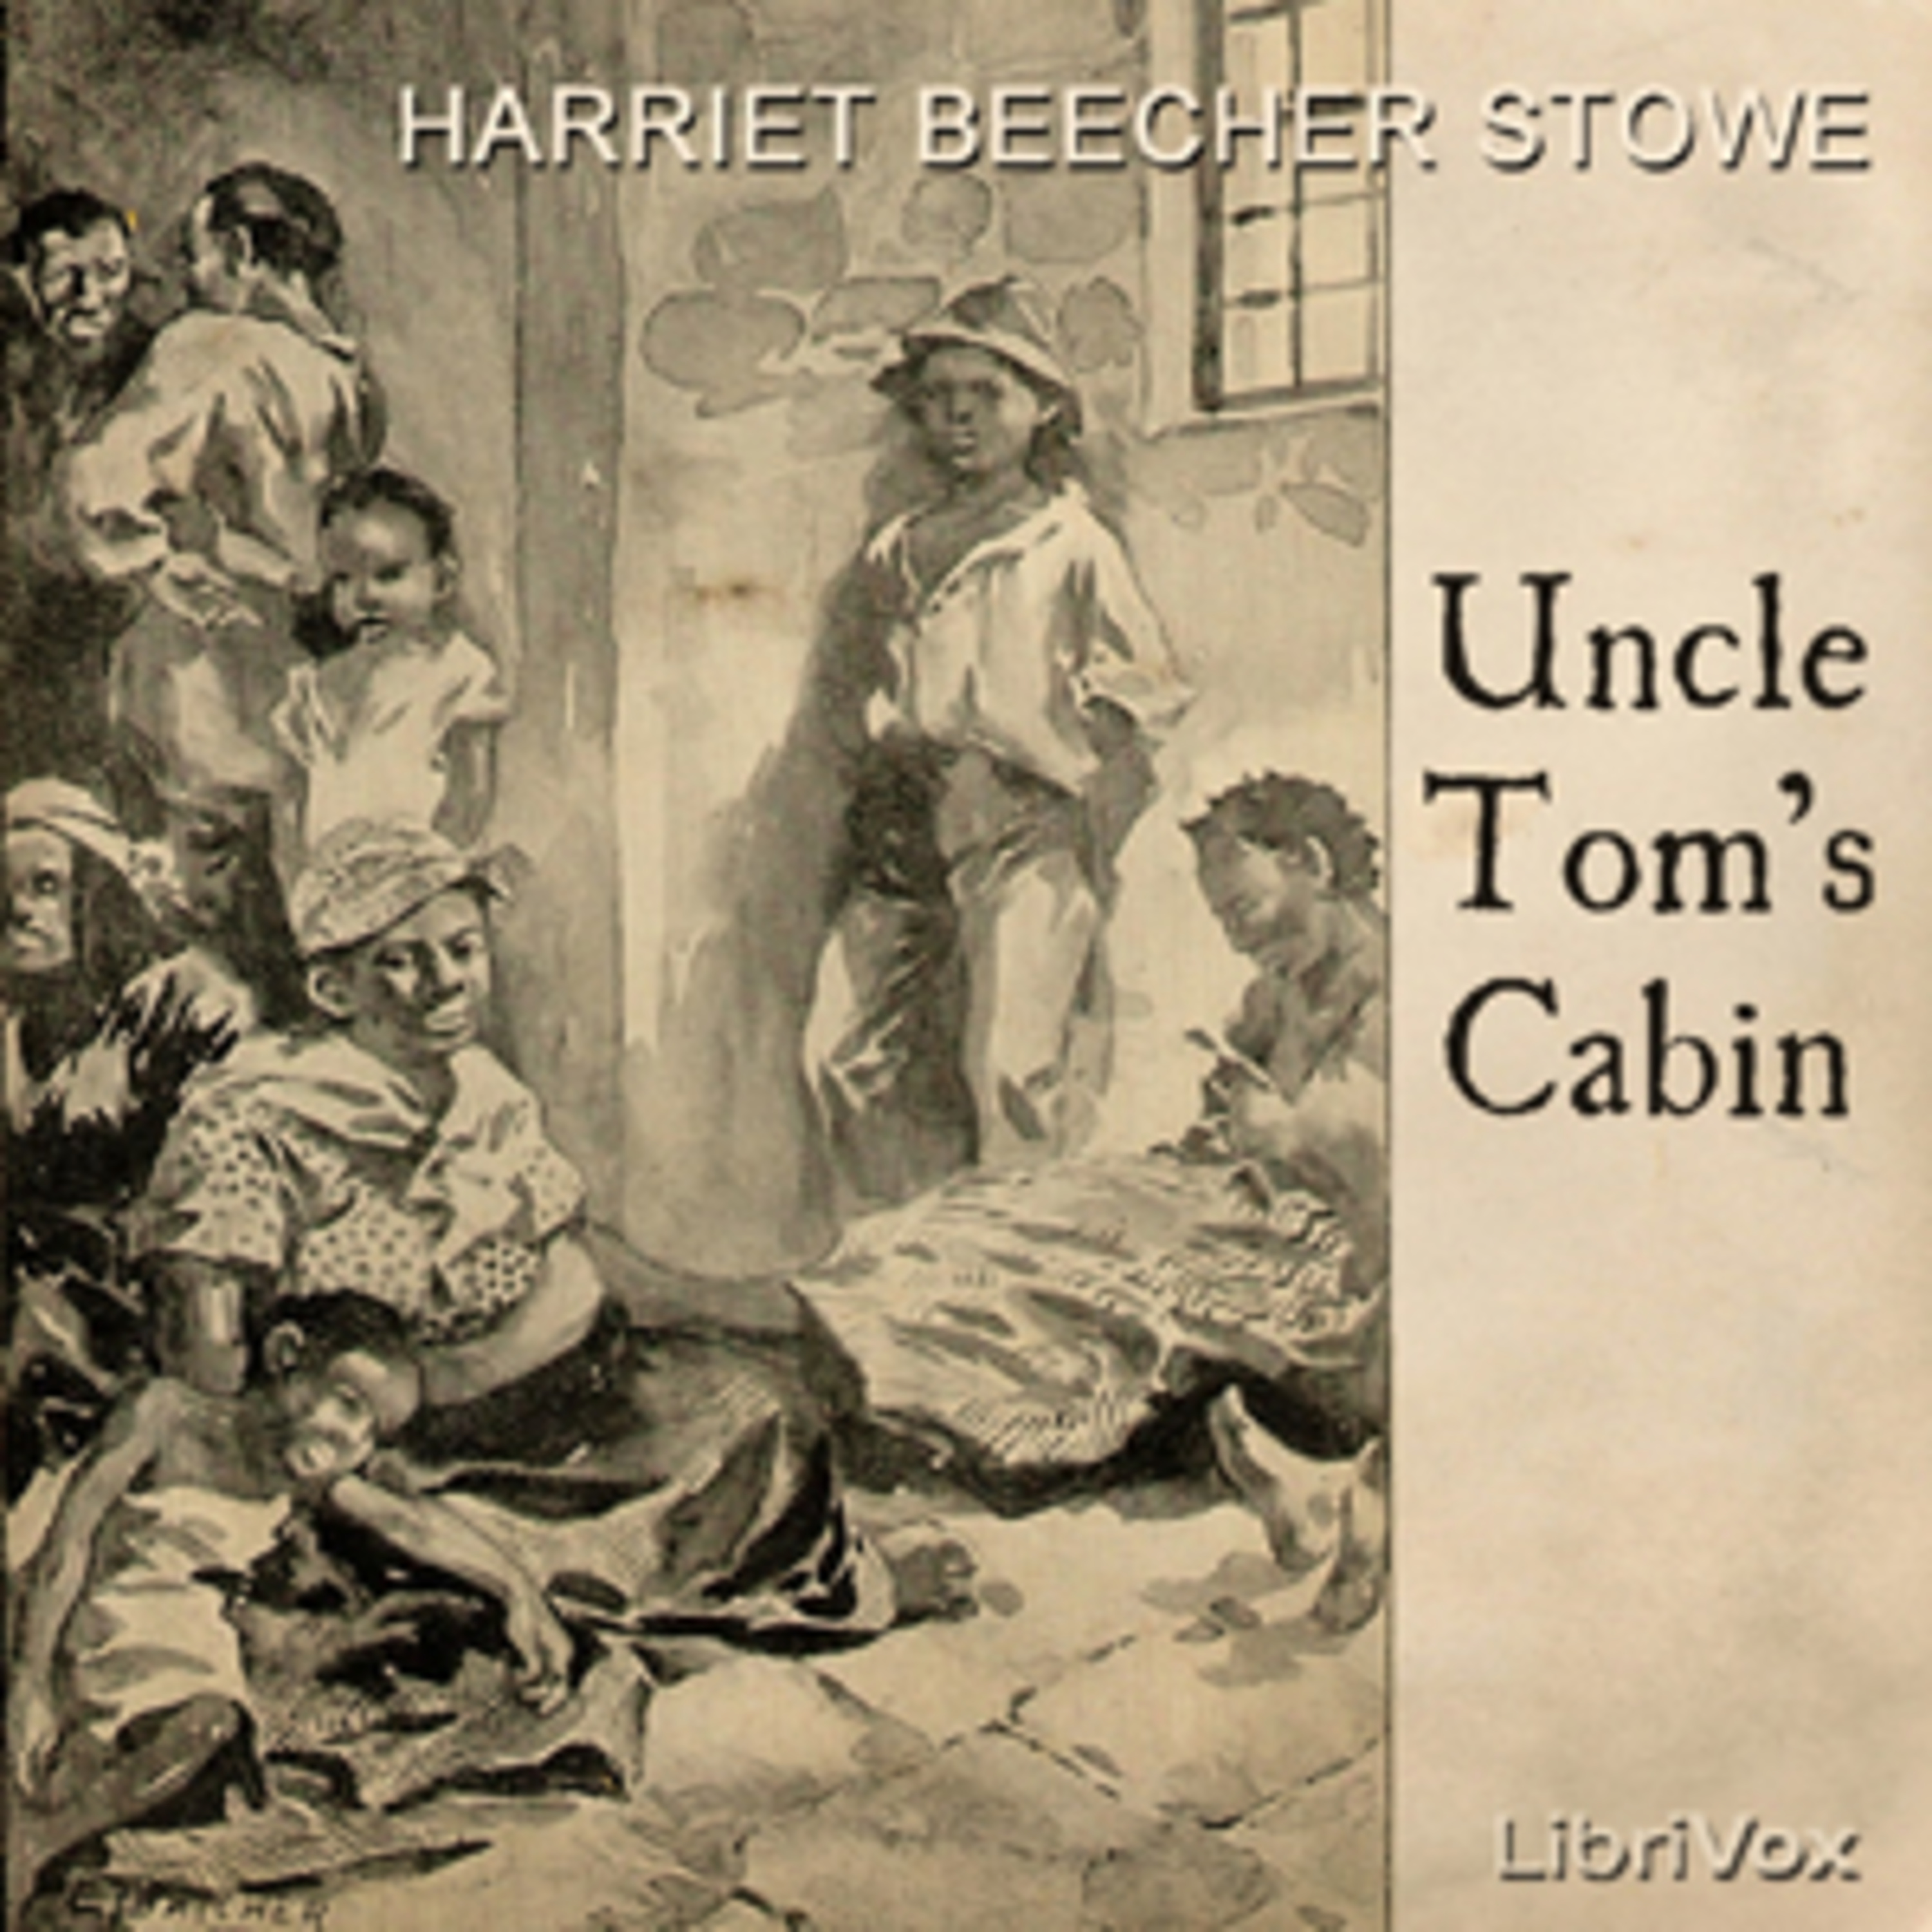 Uncle Tom's Cabin Podcast - Harriet Beecher Stowe - The Book That Started the Civil War - Chapters 21-24 - Kentuck - Grass Withereth The Flower Fadeth - Henrique - Foreshadowings